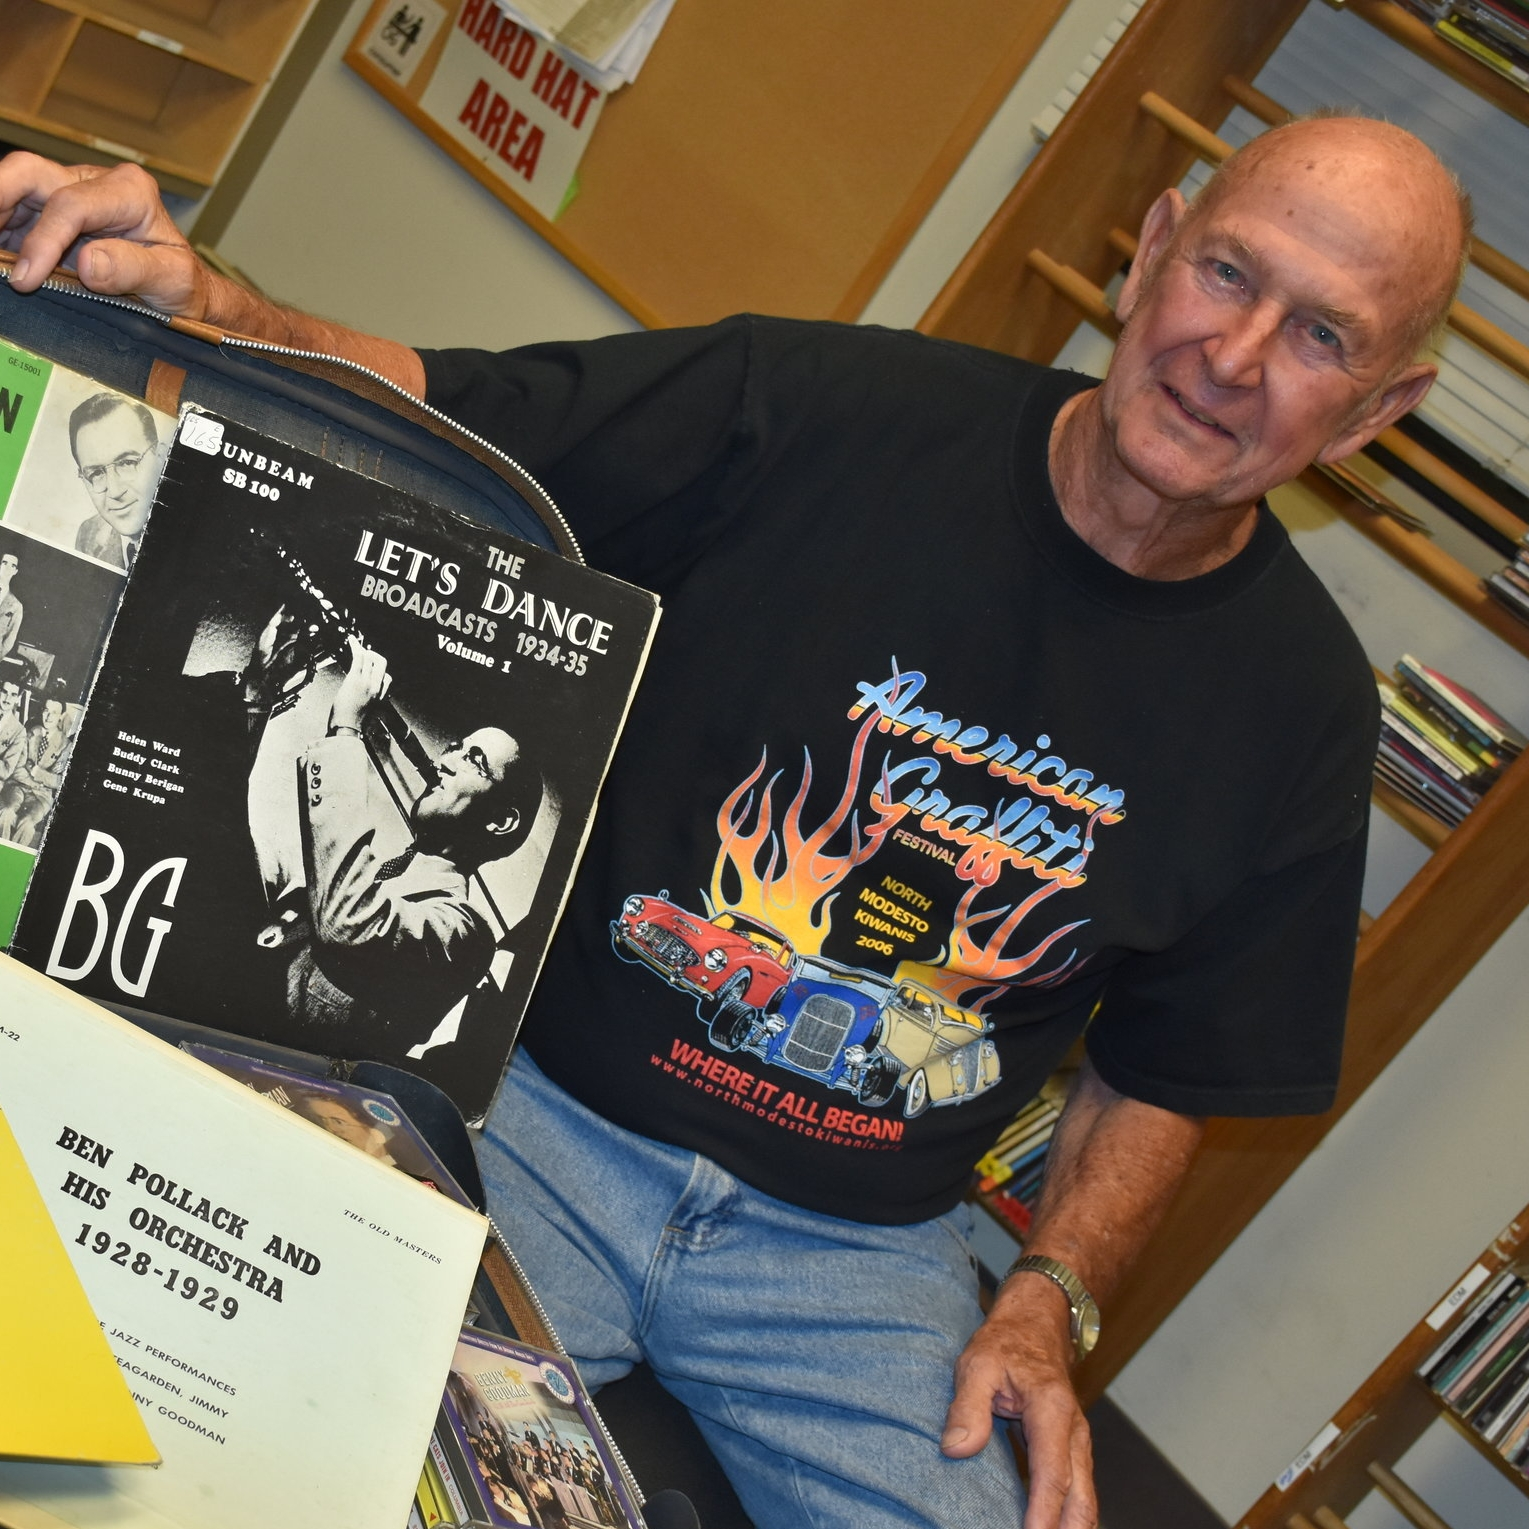 Name: Harold Pete Peterson  DJ name: Harold Peterson  With KCSS since: 2014  Favorite Musicians: Benny Goodman, Artie Shaw  Show Music Genre: Swing, Blues, & Jazz  Program Time: Wednesdays, 10 a.m. - 1 p.m.